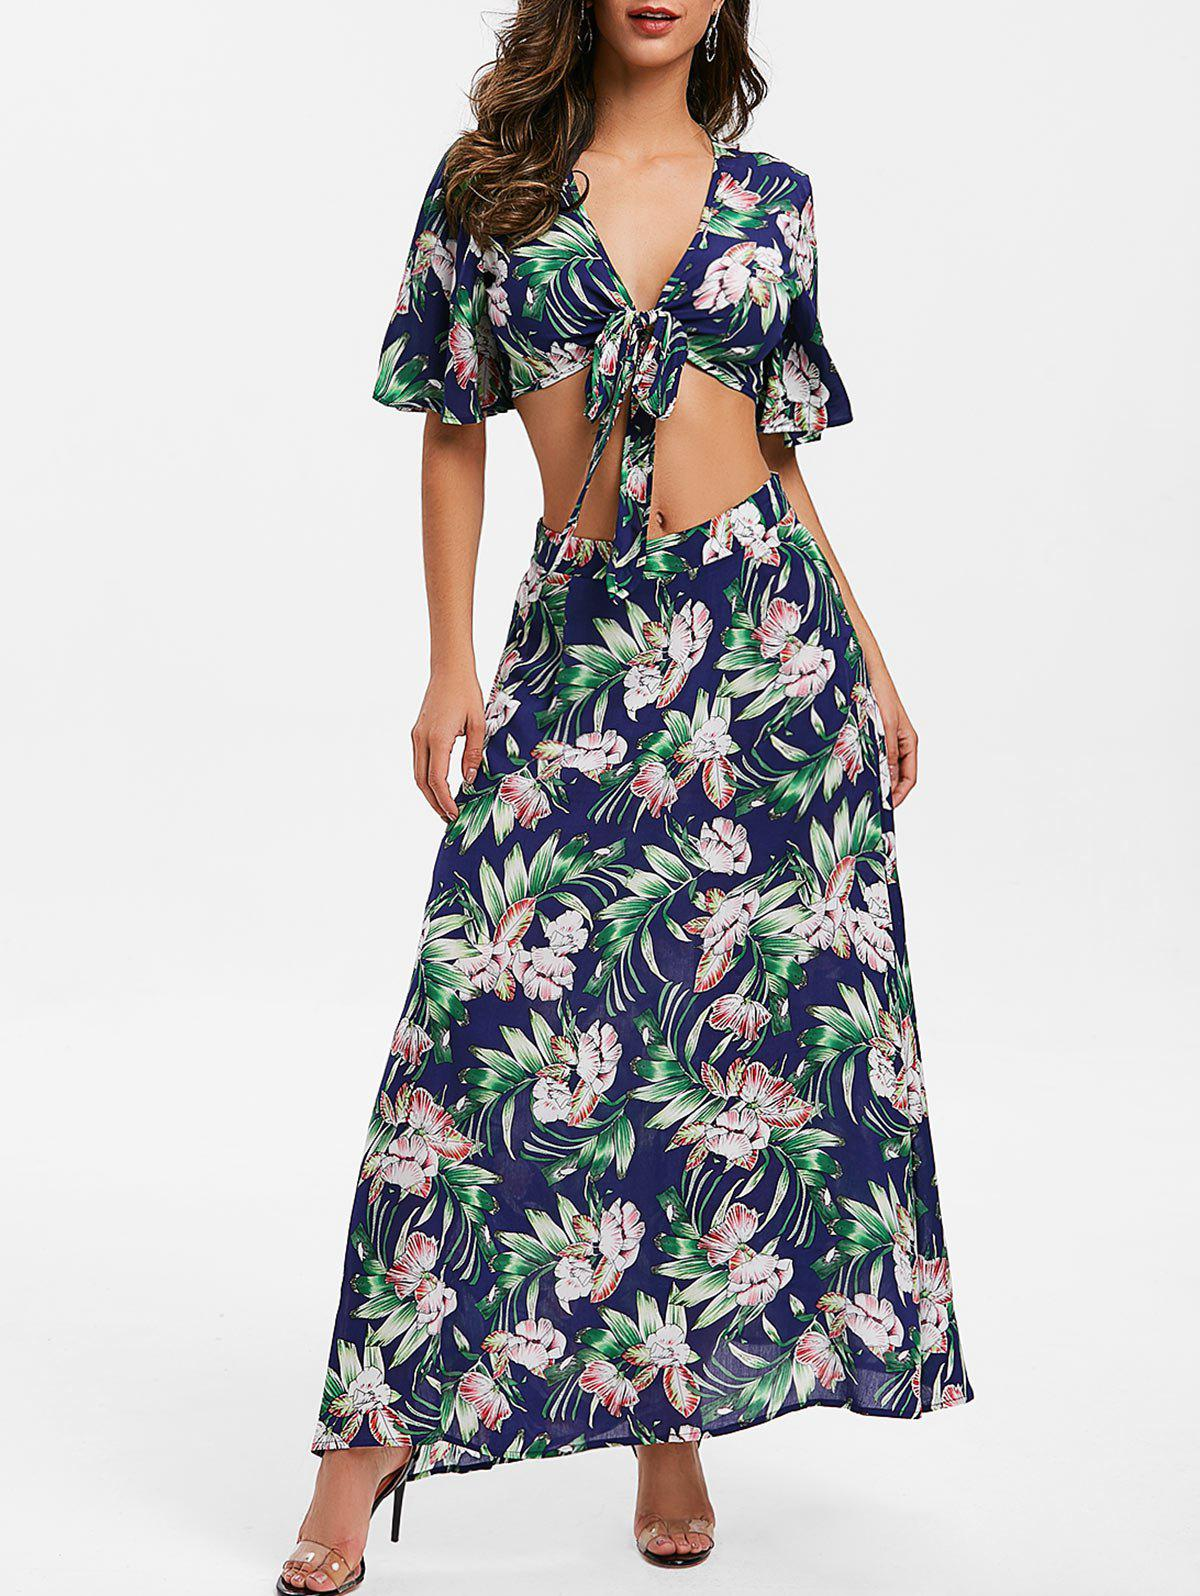 Trendy Floral Print Bowknot Two Piece Dress